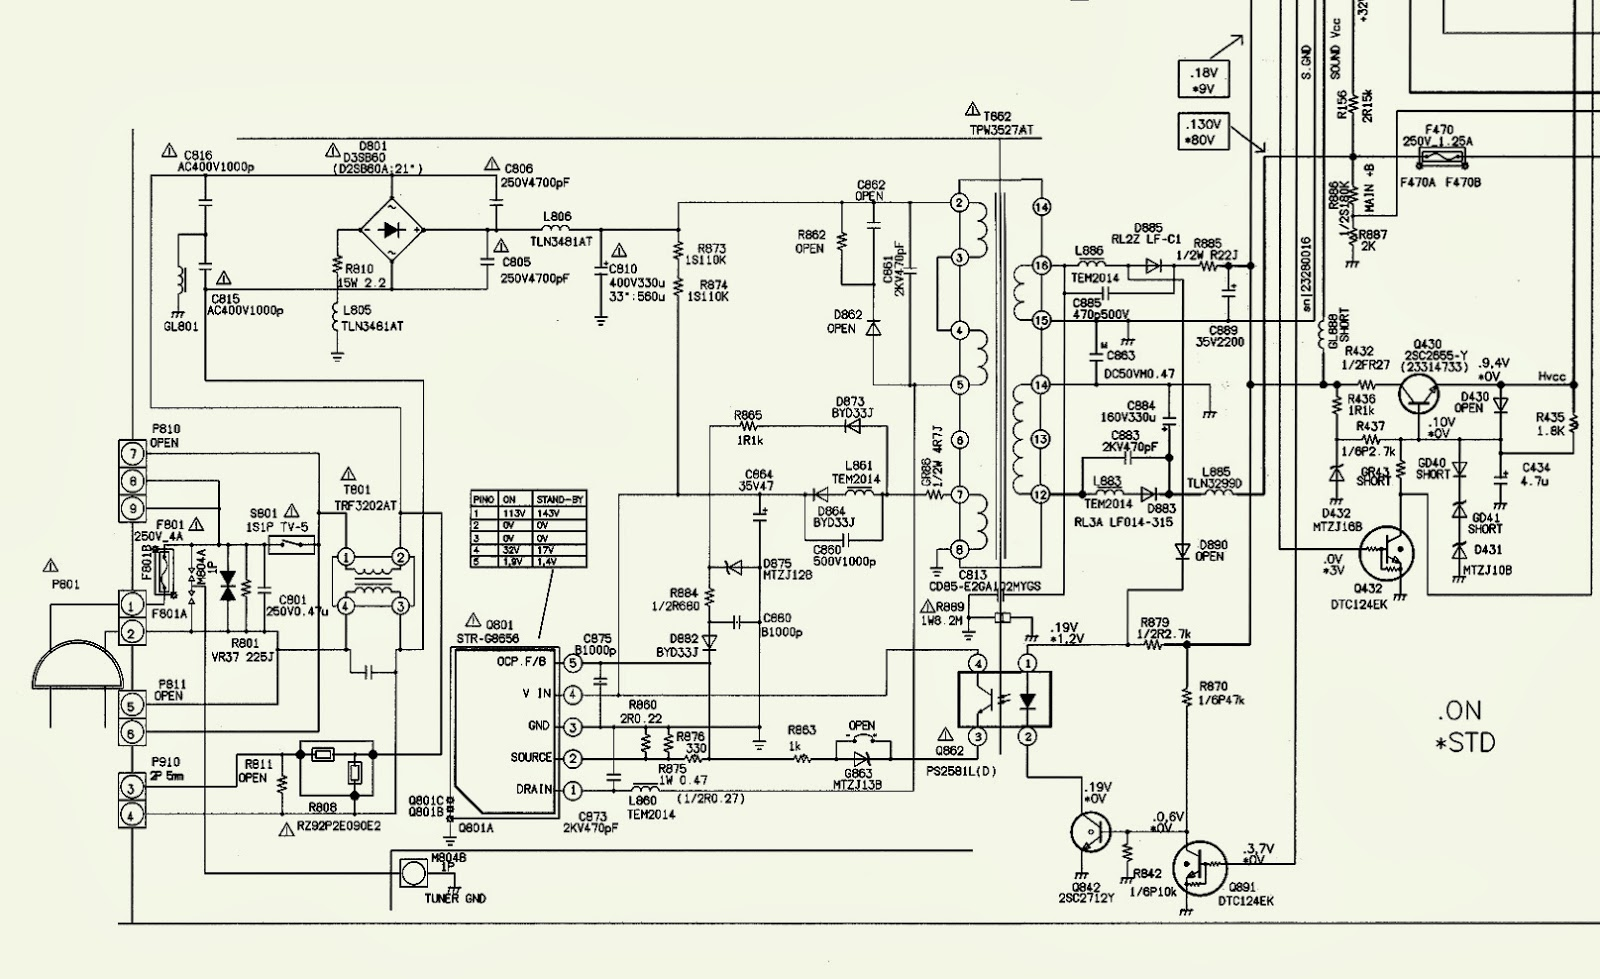 smps schematic - toshiba tv 2987 - using str